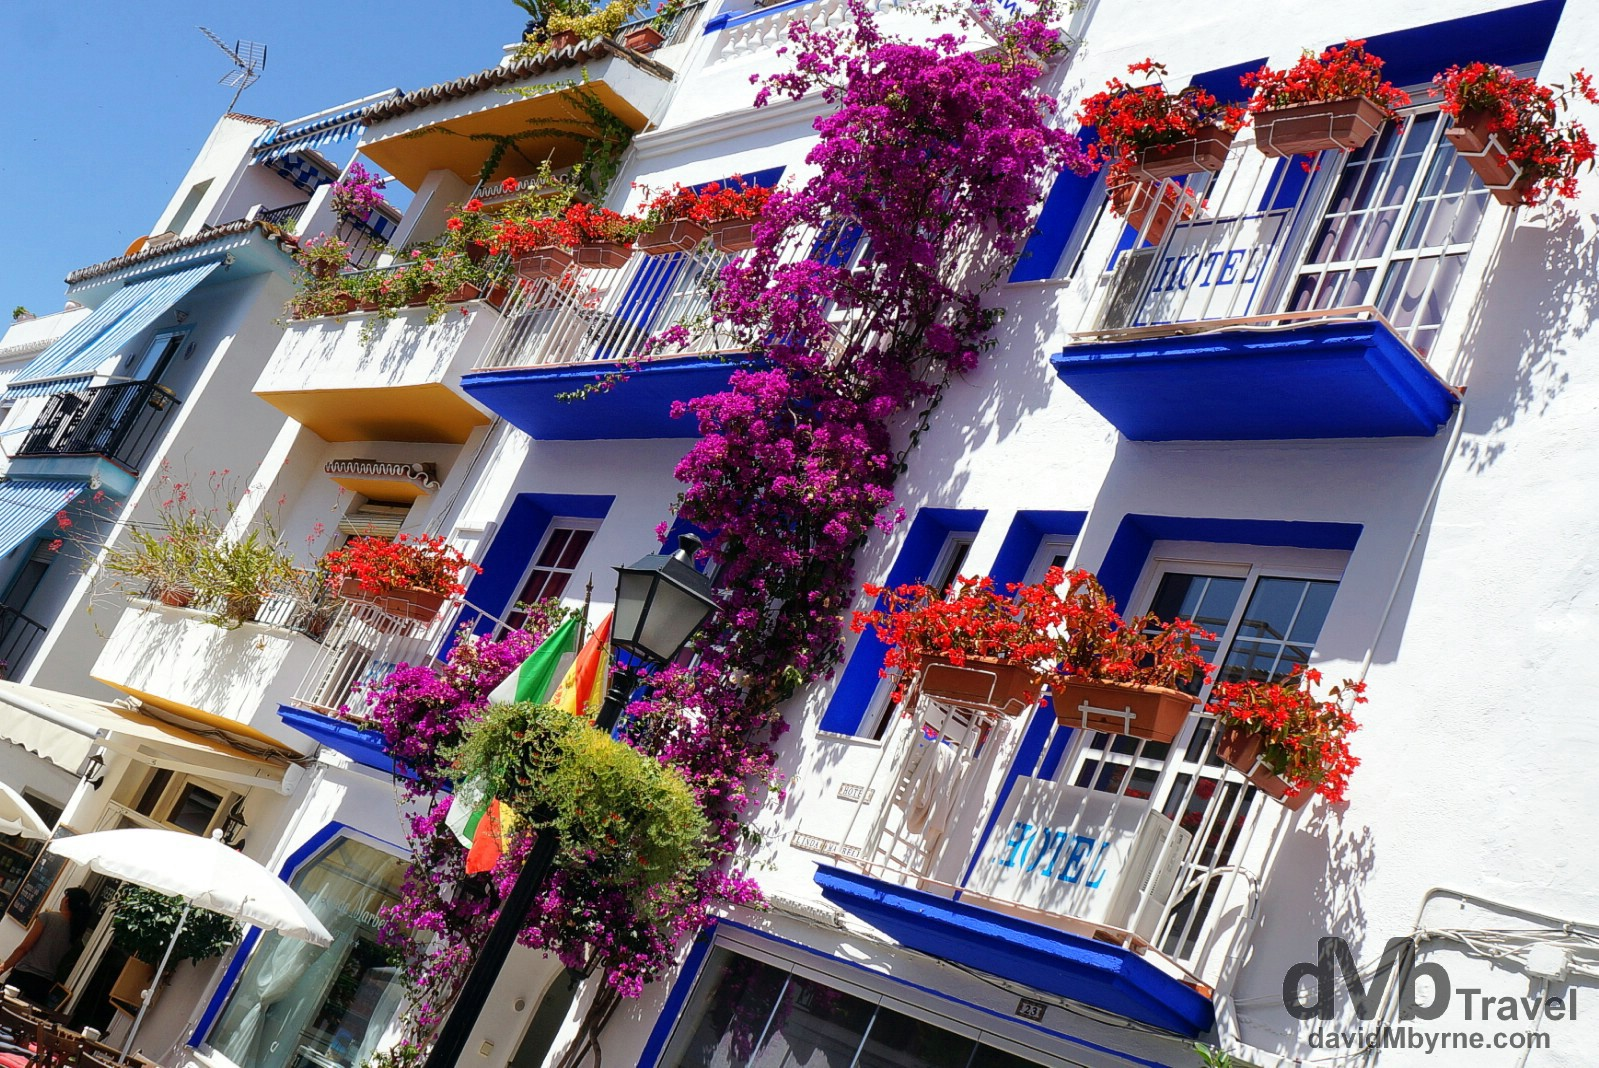 Calle Ancha, Marbella, Andalusia, Spain. June 7th, 2014.